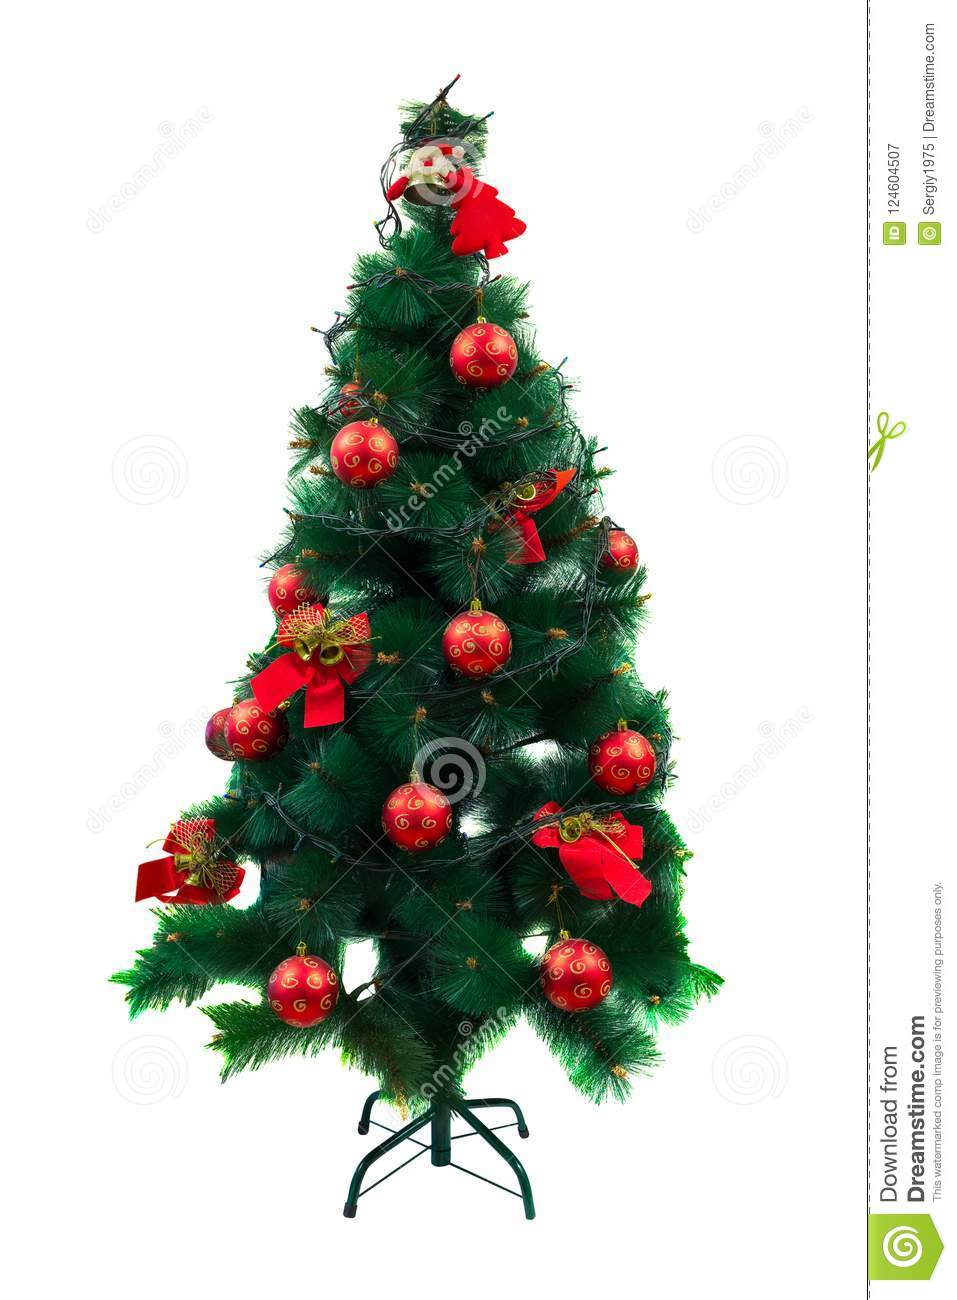 download green christmas tree with christmas decorations isolated on white background stock image image of